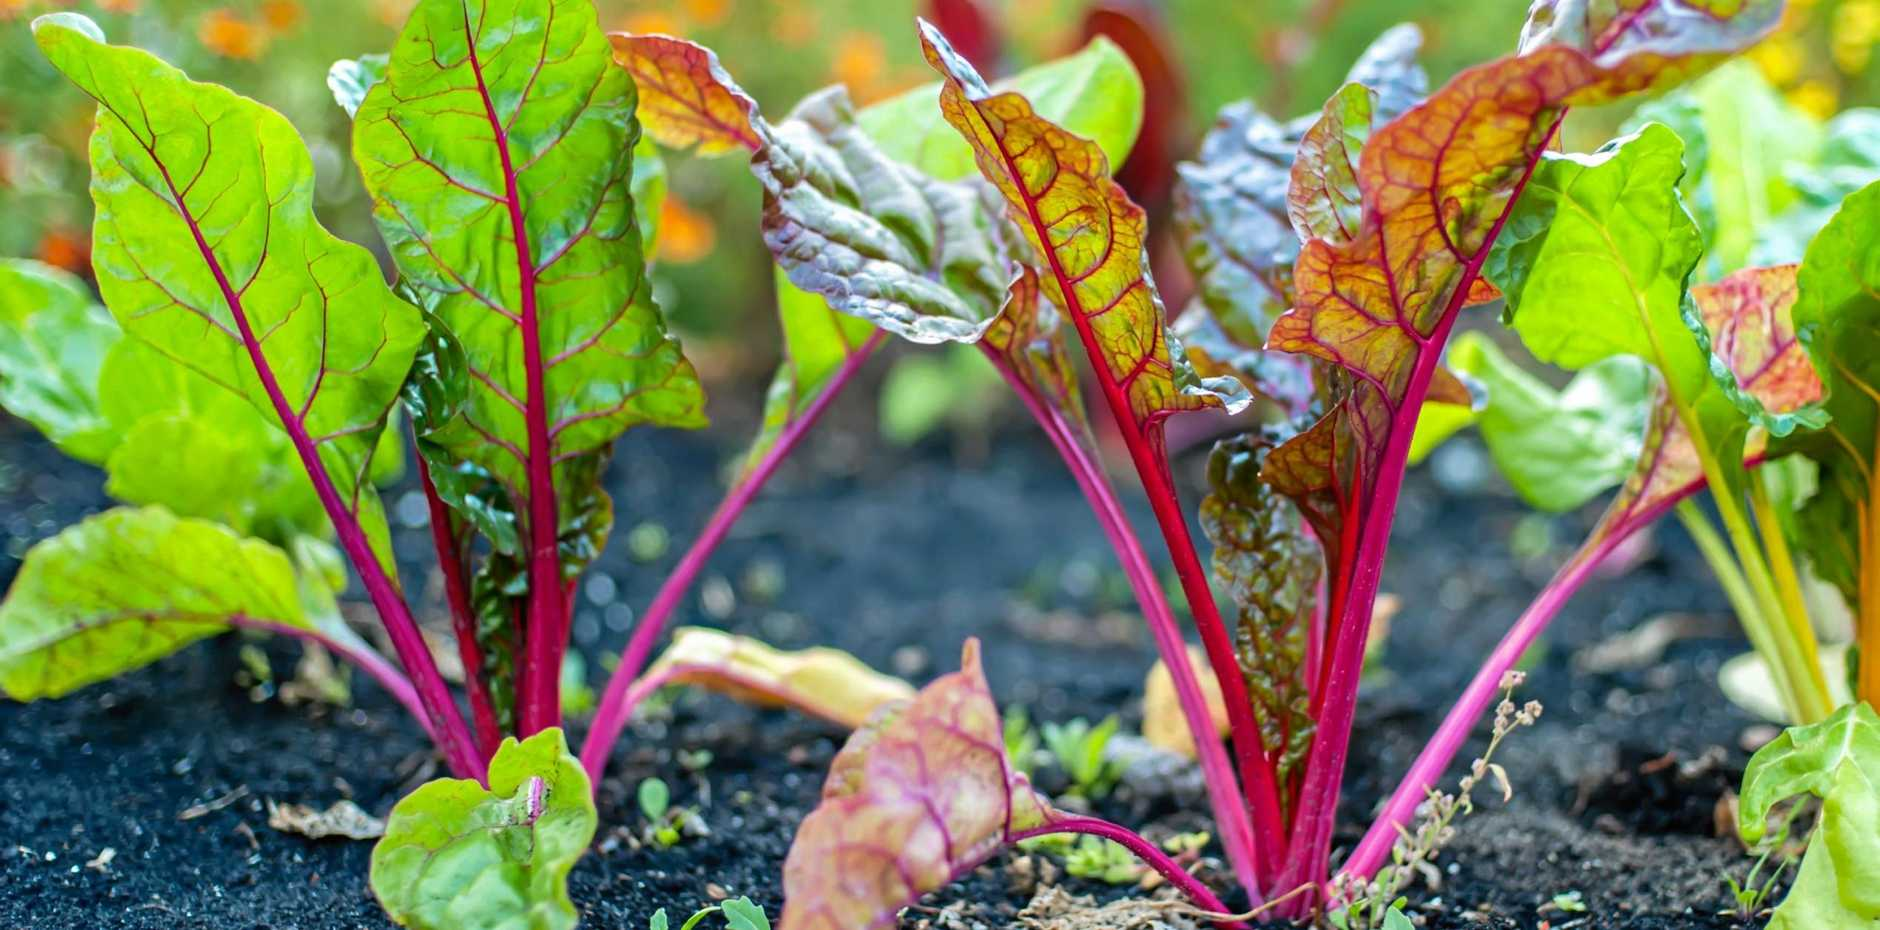 The root part of beetroot can be roasted, used in relish, hommus, soups and sandwiches and the colourful leaves can be mixed into salads.